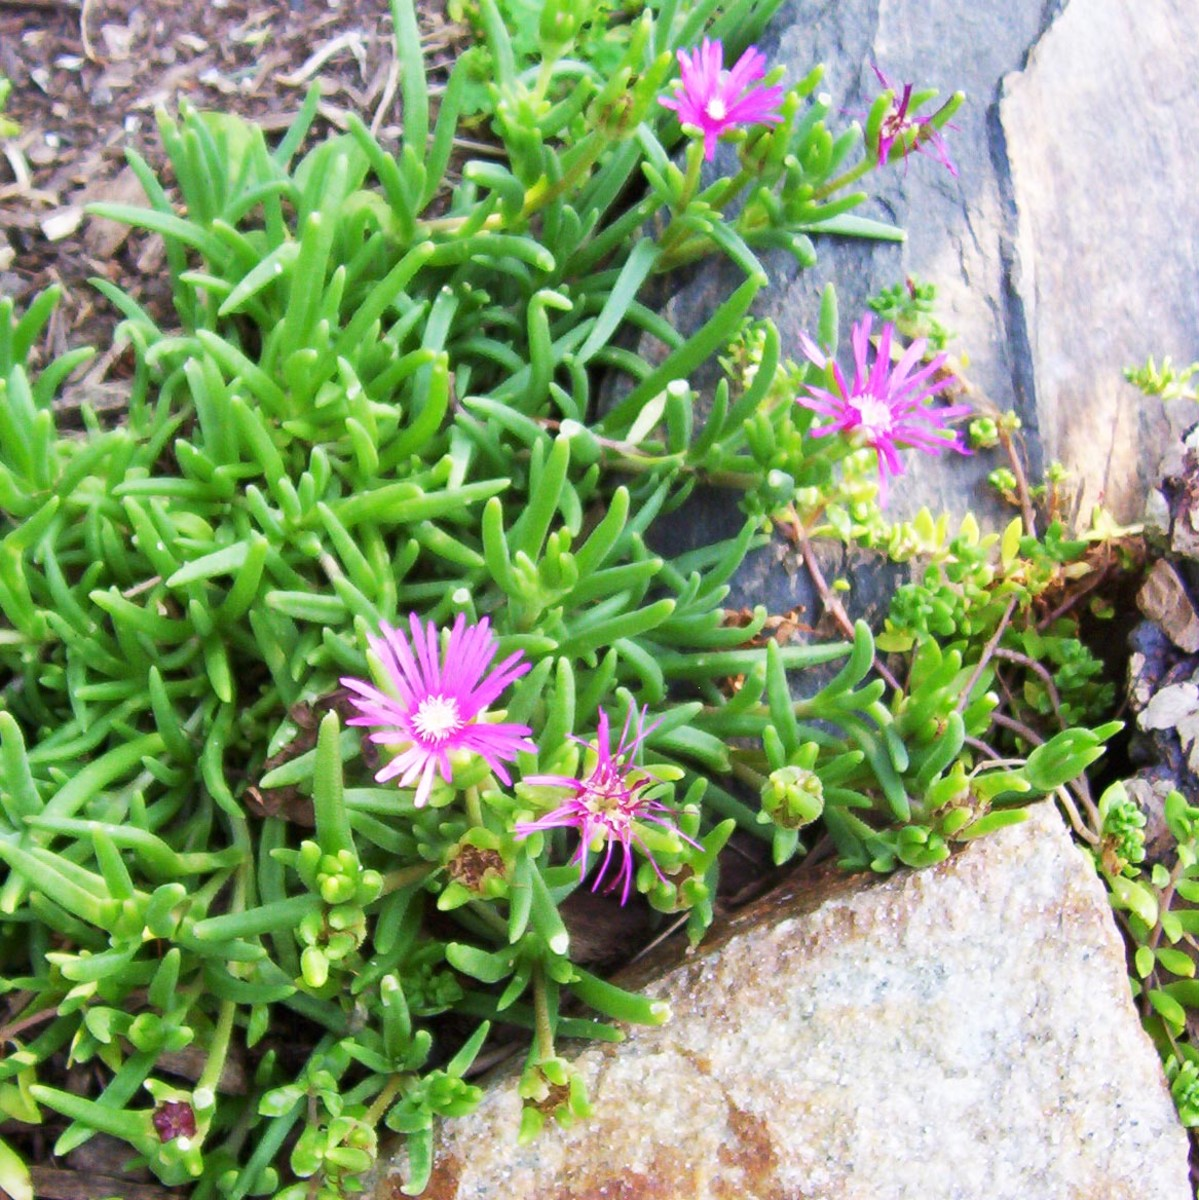 Ice plant is a type of sedum